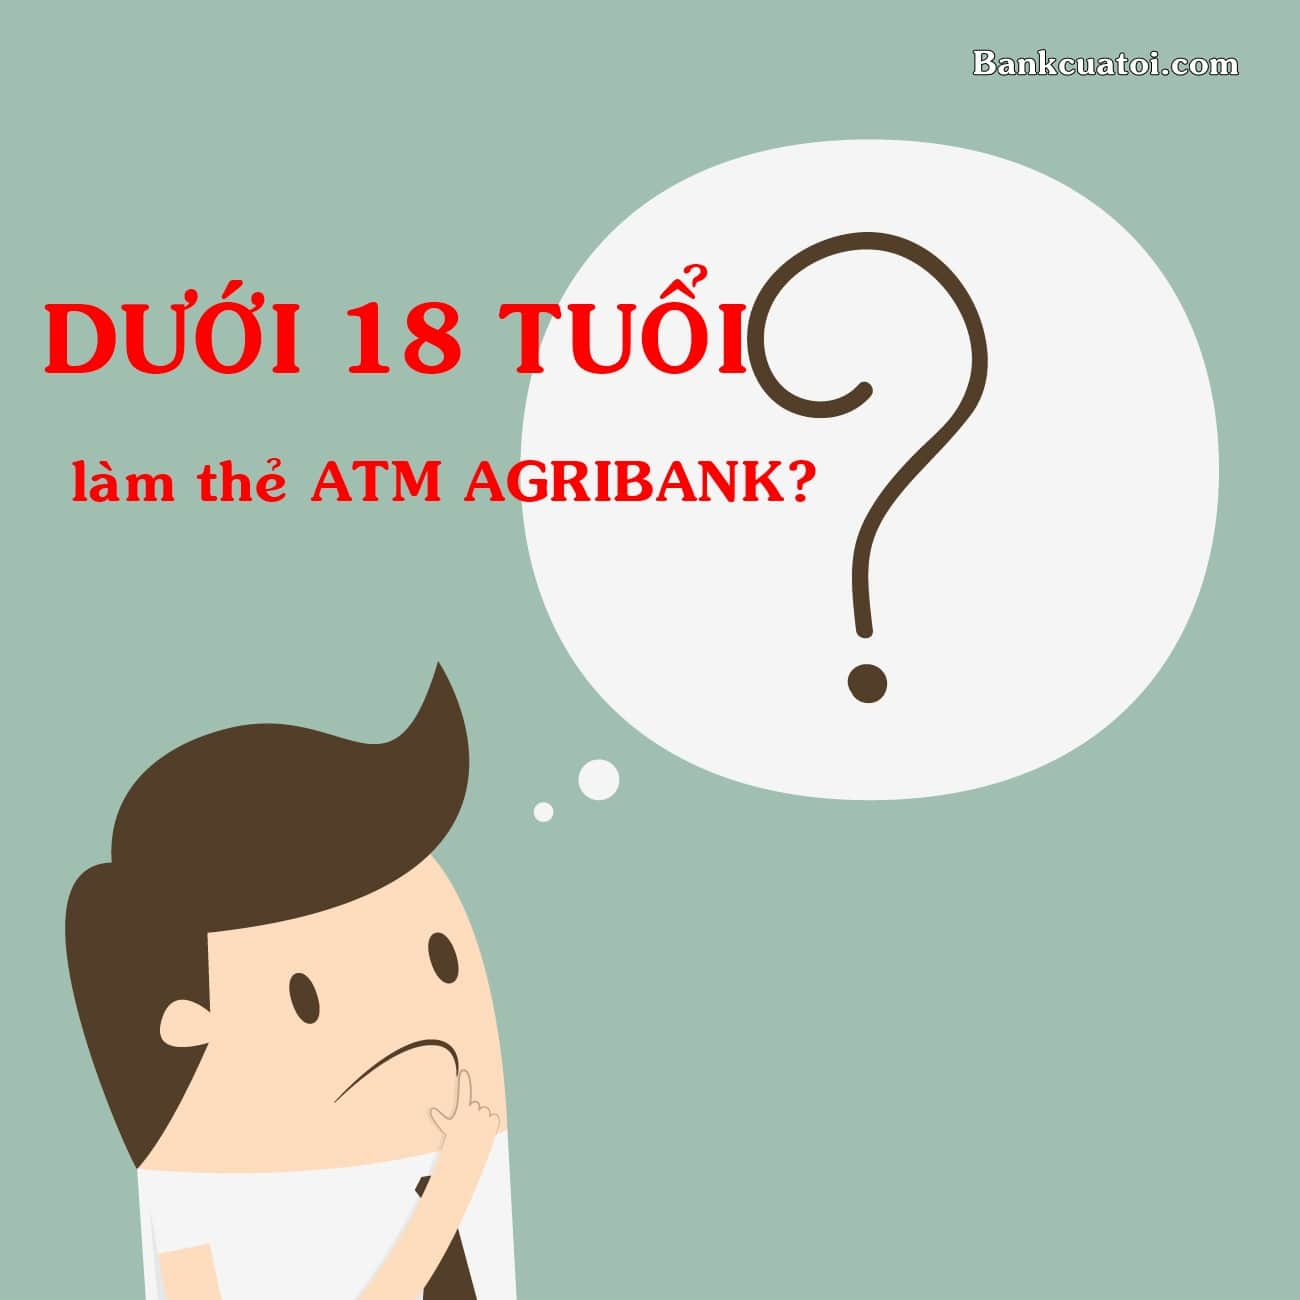 duoi 18 tuoi co duoc lam the atm agribank